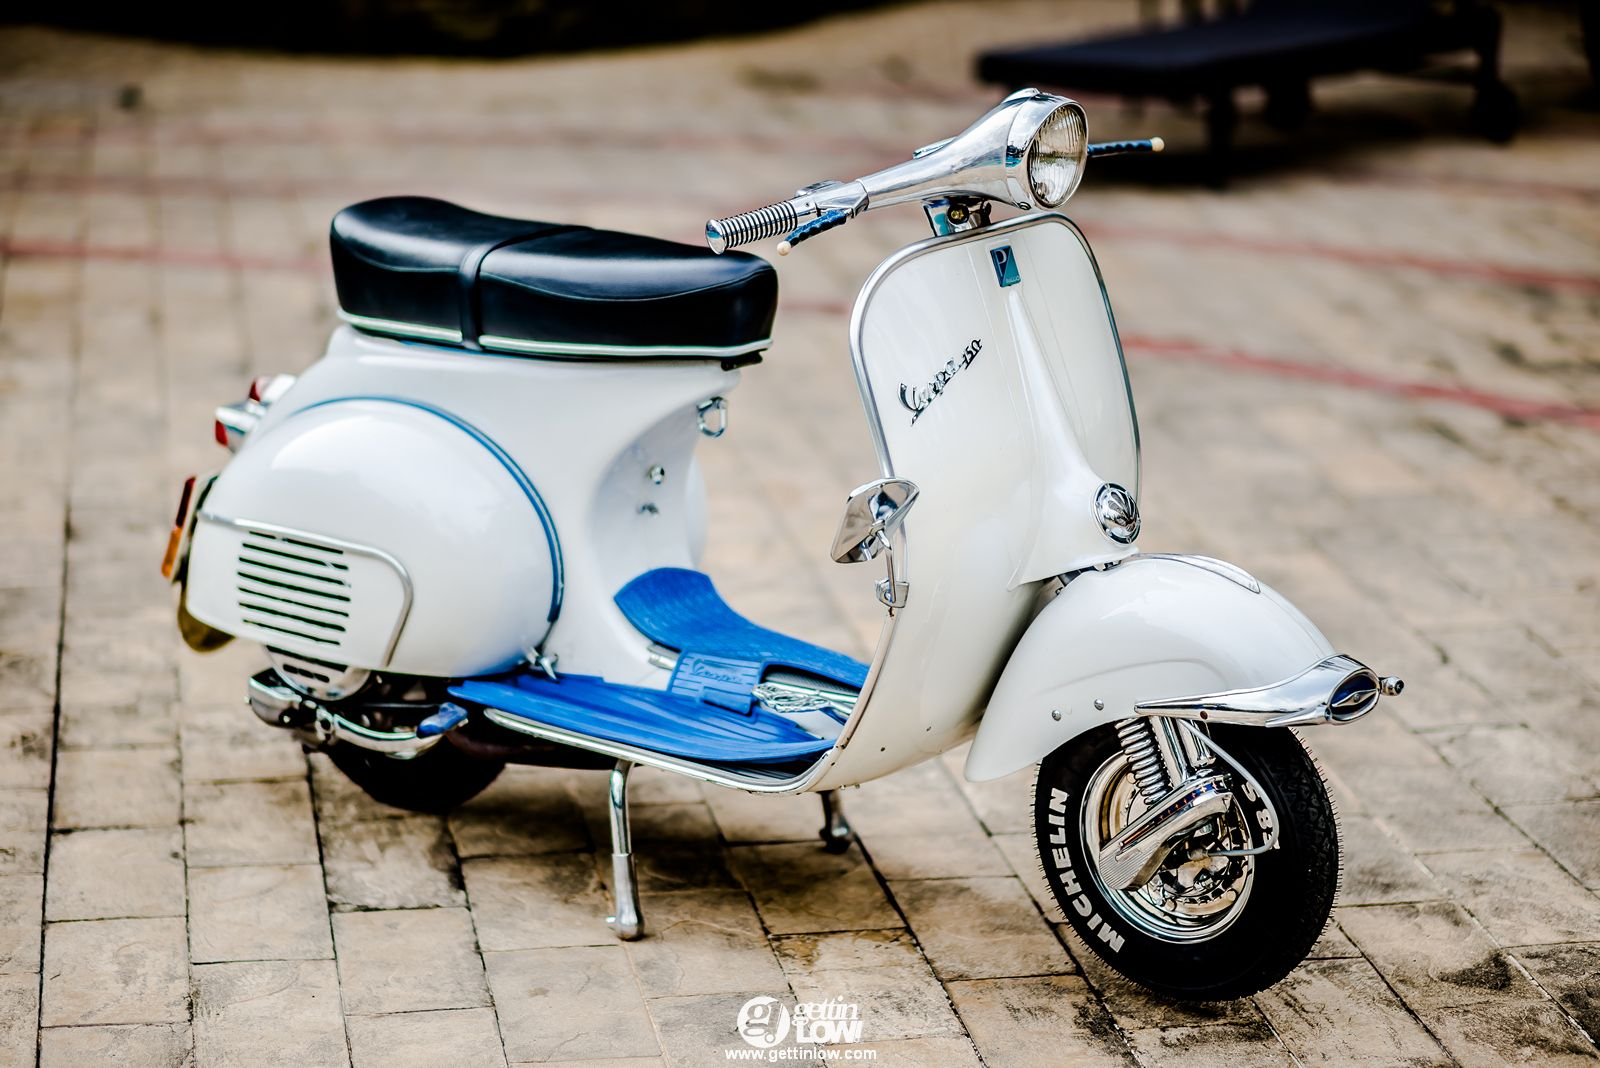 1962 Piaggio Vespa Vbb Bimabunch Gettinlow Pinterest Vba Wiring Diagram